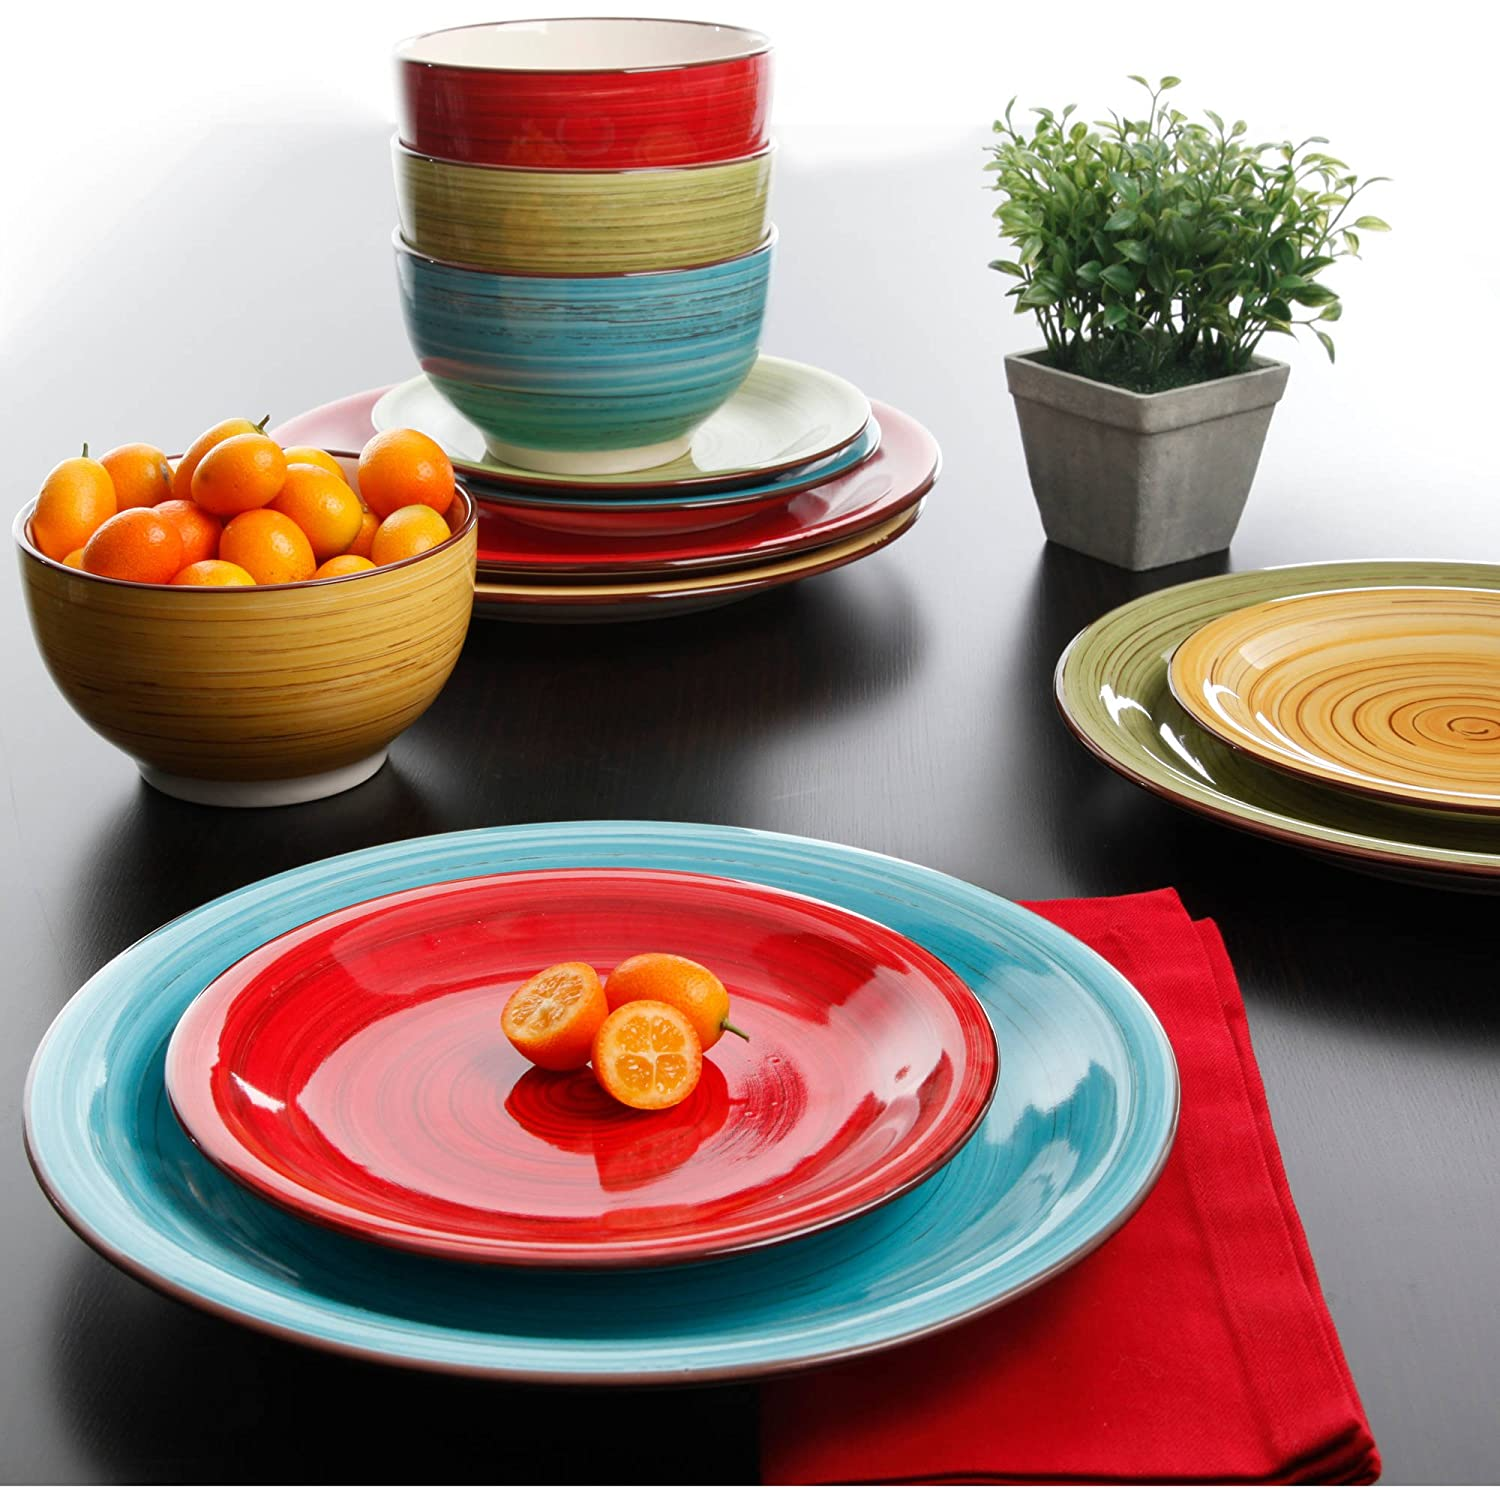 Amazon.com | Better Homes and Gardens Festival 12-Piece Dinnerware Set Assorted Dishwasher Safe Dinnerware Sets & Amazon.com | Better Homes and Gardens Festival 12-Piece Dinnerware ...